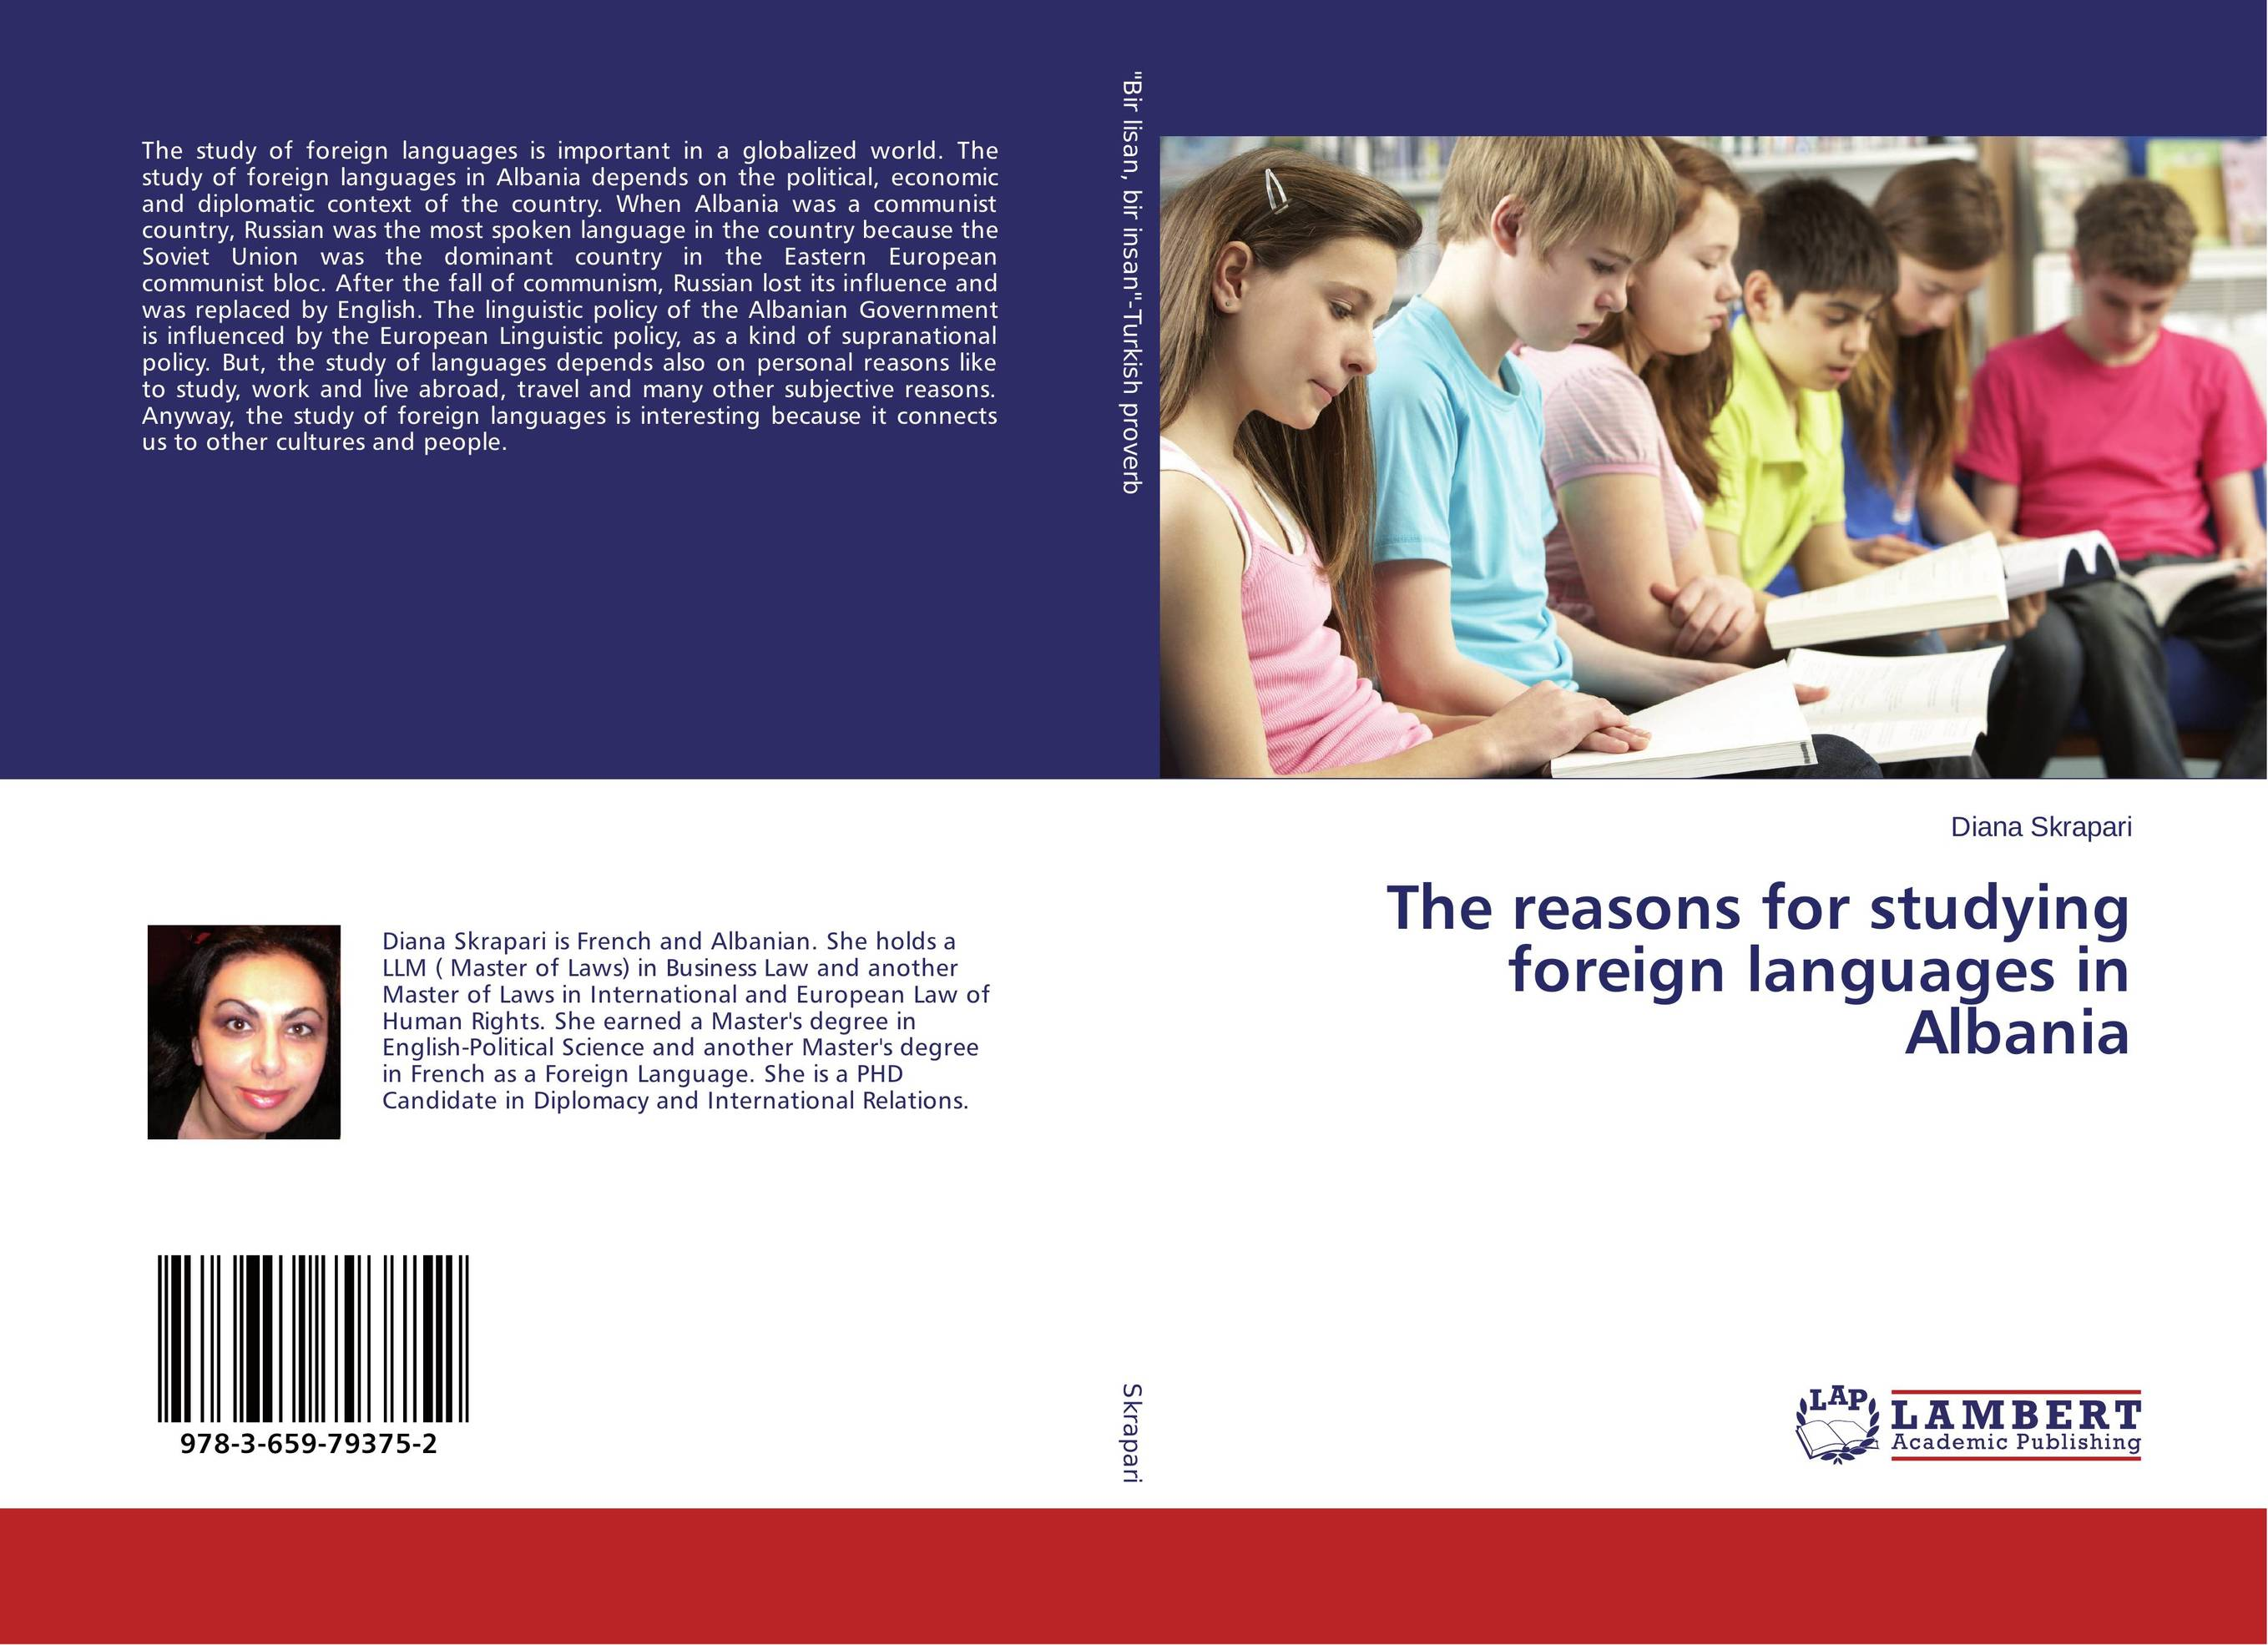 The reasons for studying foreign languages in Albania bertsch power and policy in communist systems paper only